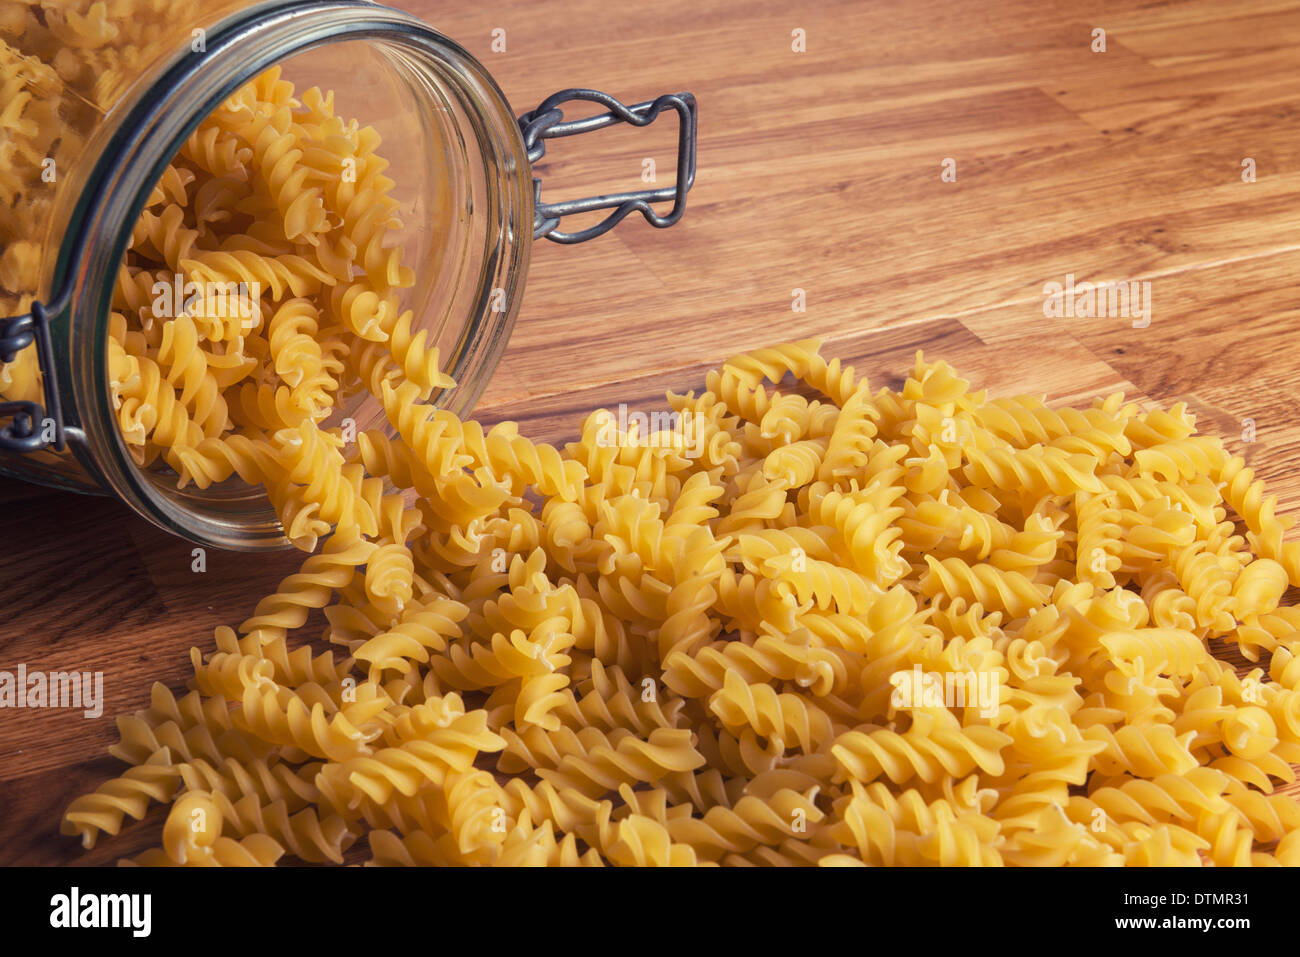 Some fussily pasta spilling from a jar. - Stock Image